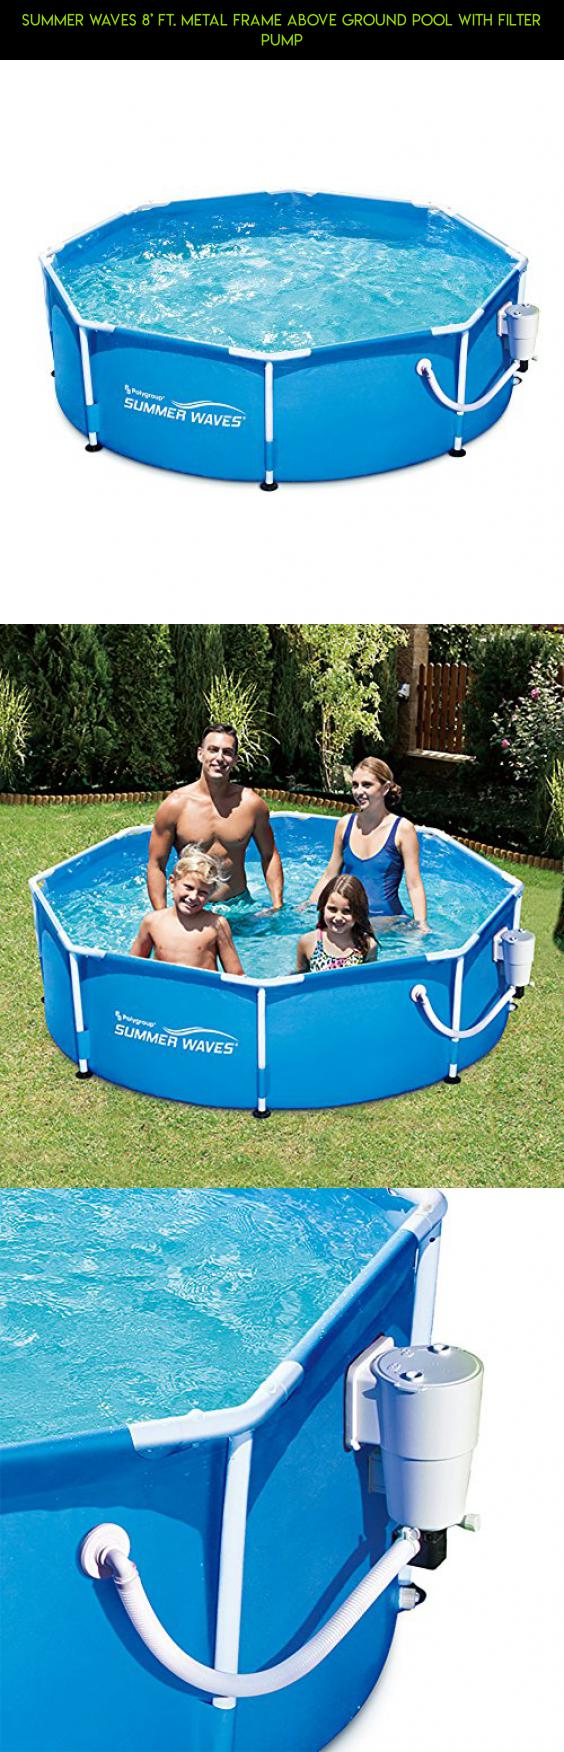 Summer Waves 8\' Ft. Metal Frame Above Ground Pool with Filter Pump ...